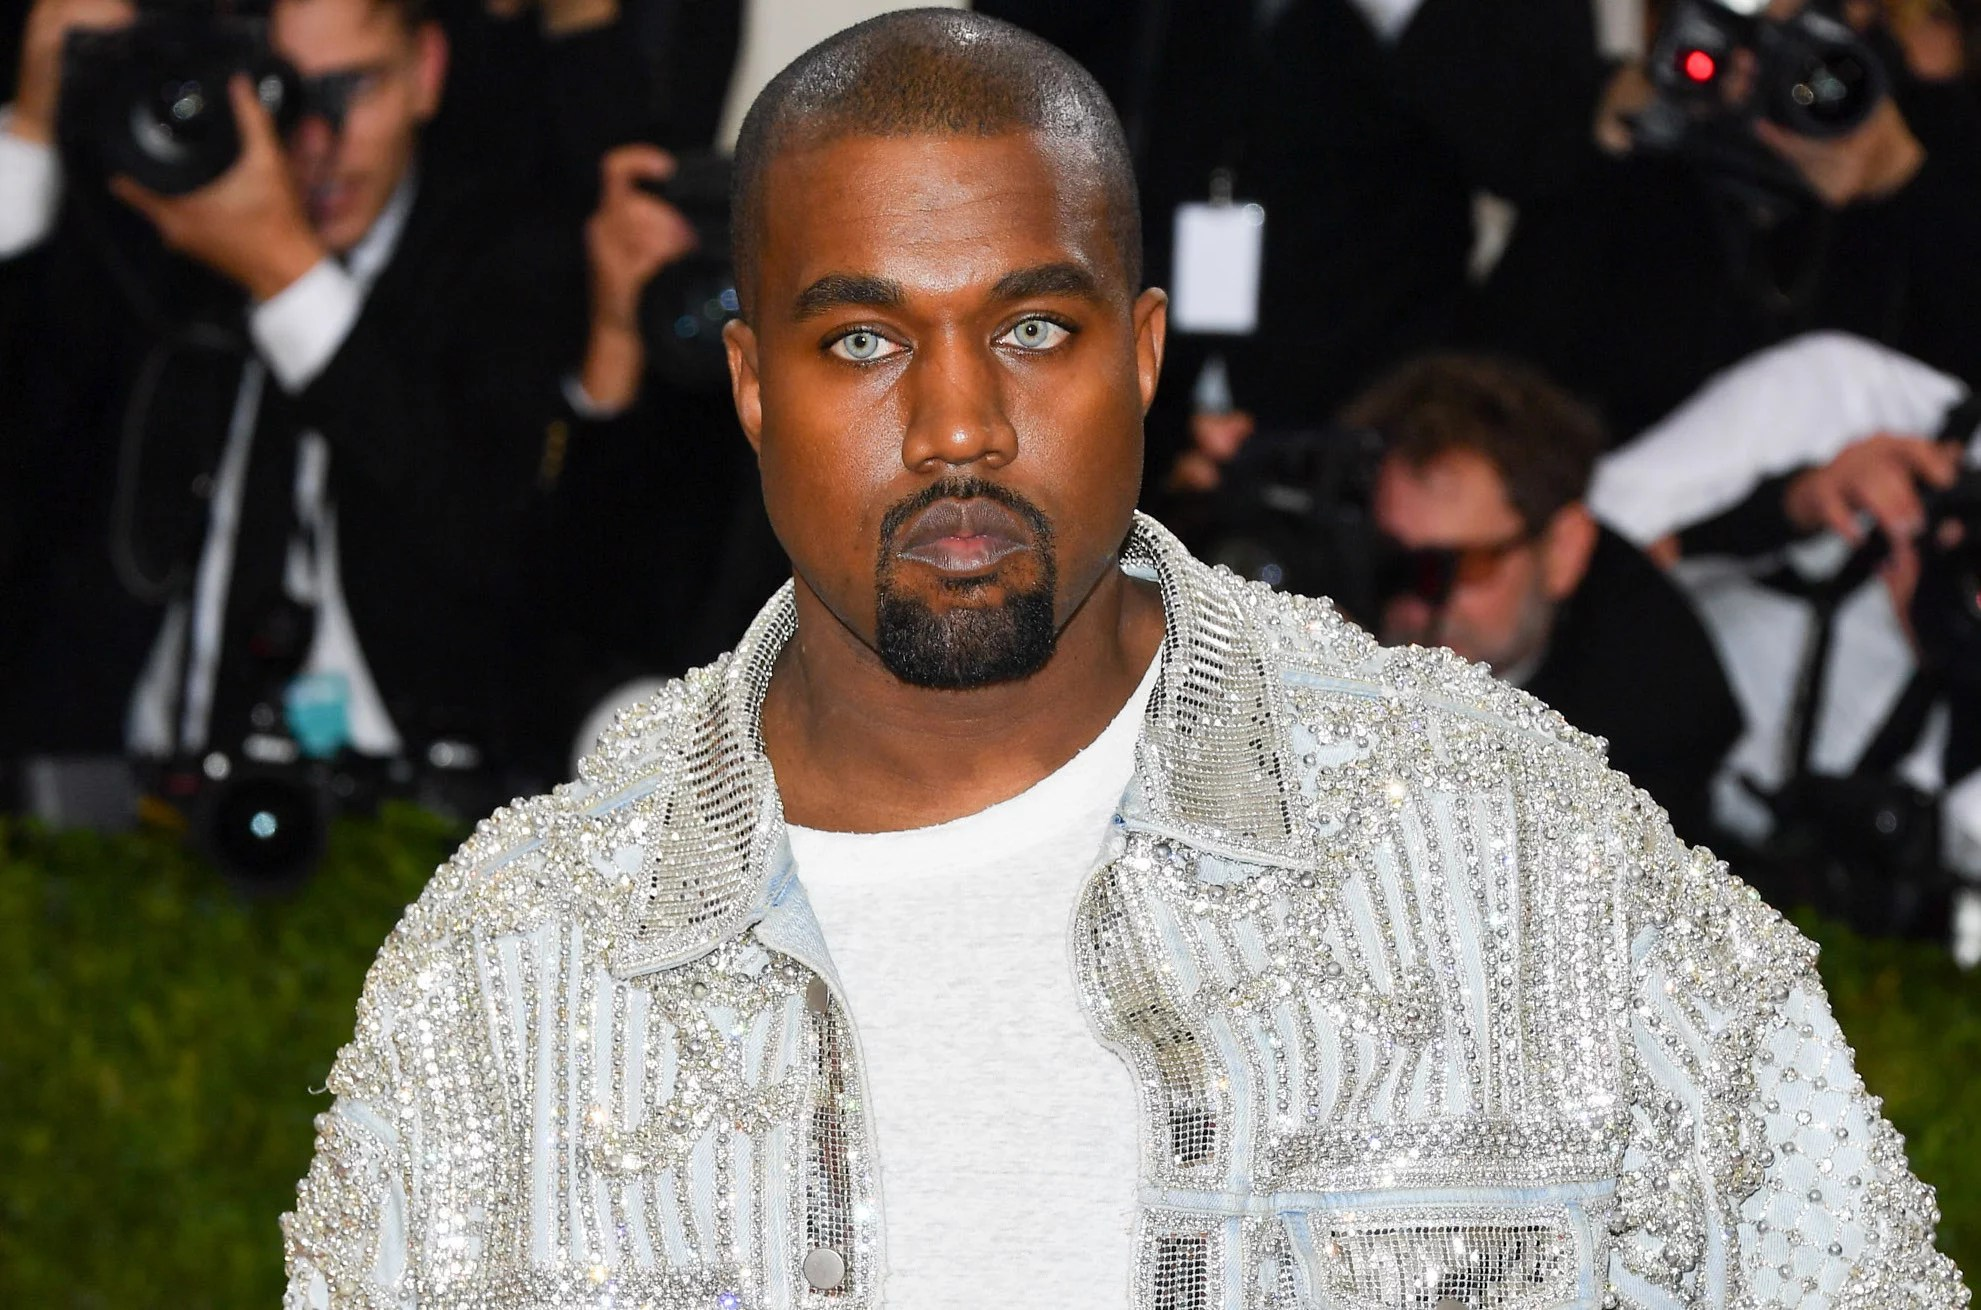 Why Wasn t Kanye West at the Met Gala 2017    POPSUGAR Celebrity Kanye West skipped the Met Gala this year while his wife  Kim Kardashian   hit the red carpet solo  People reported on Monday that Kanye is  still  very much